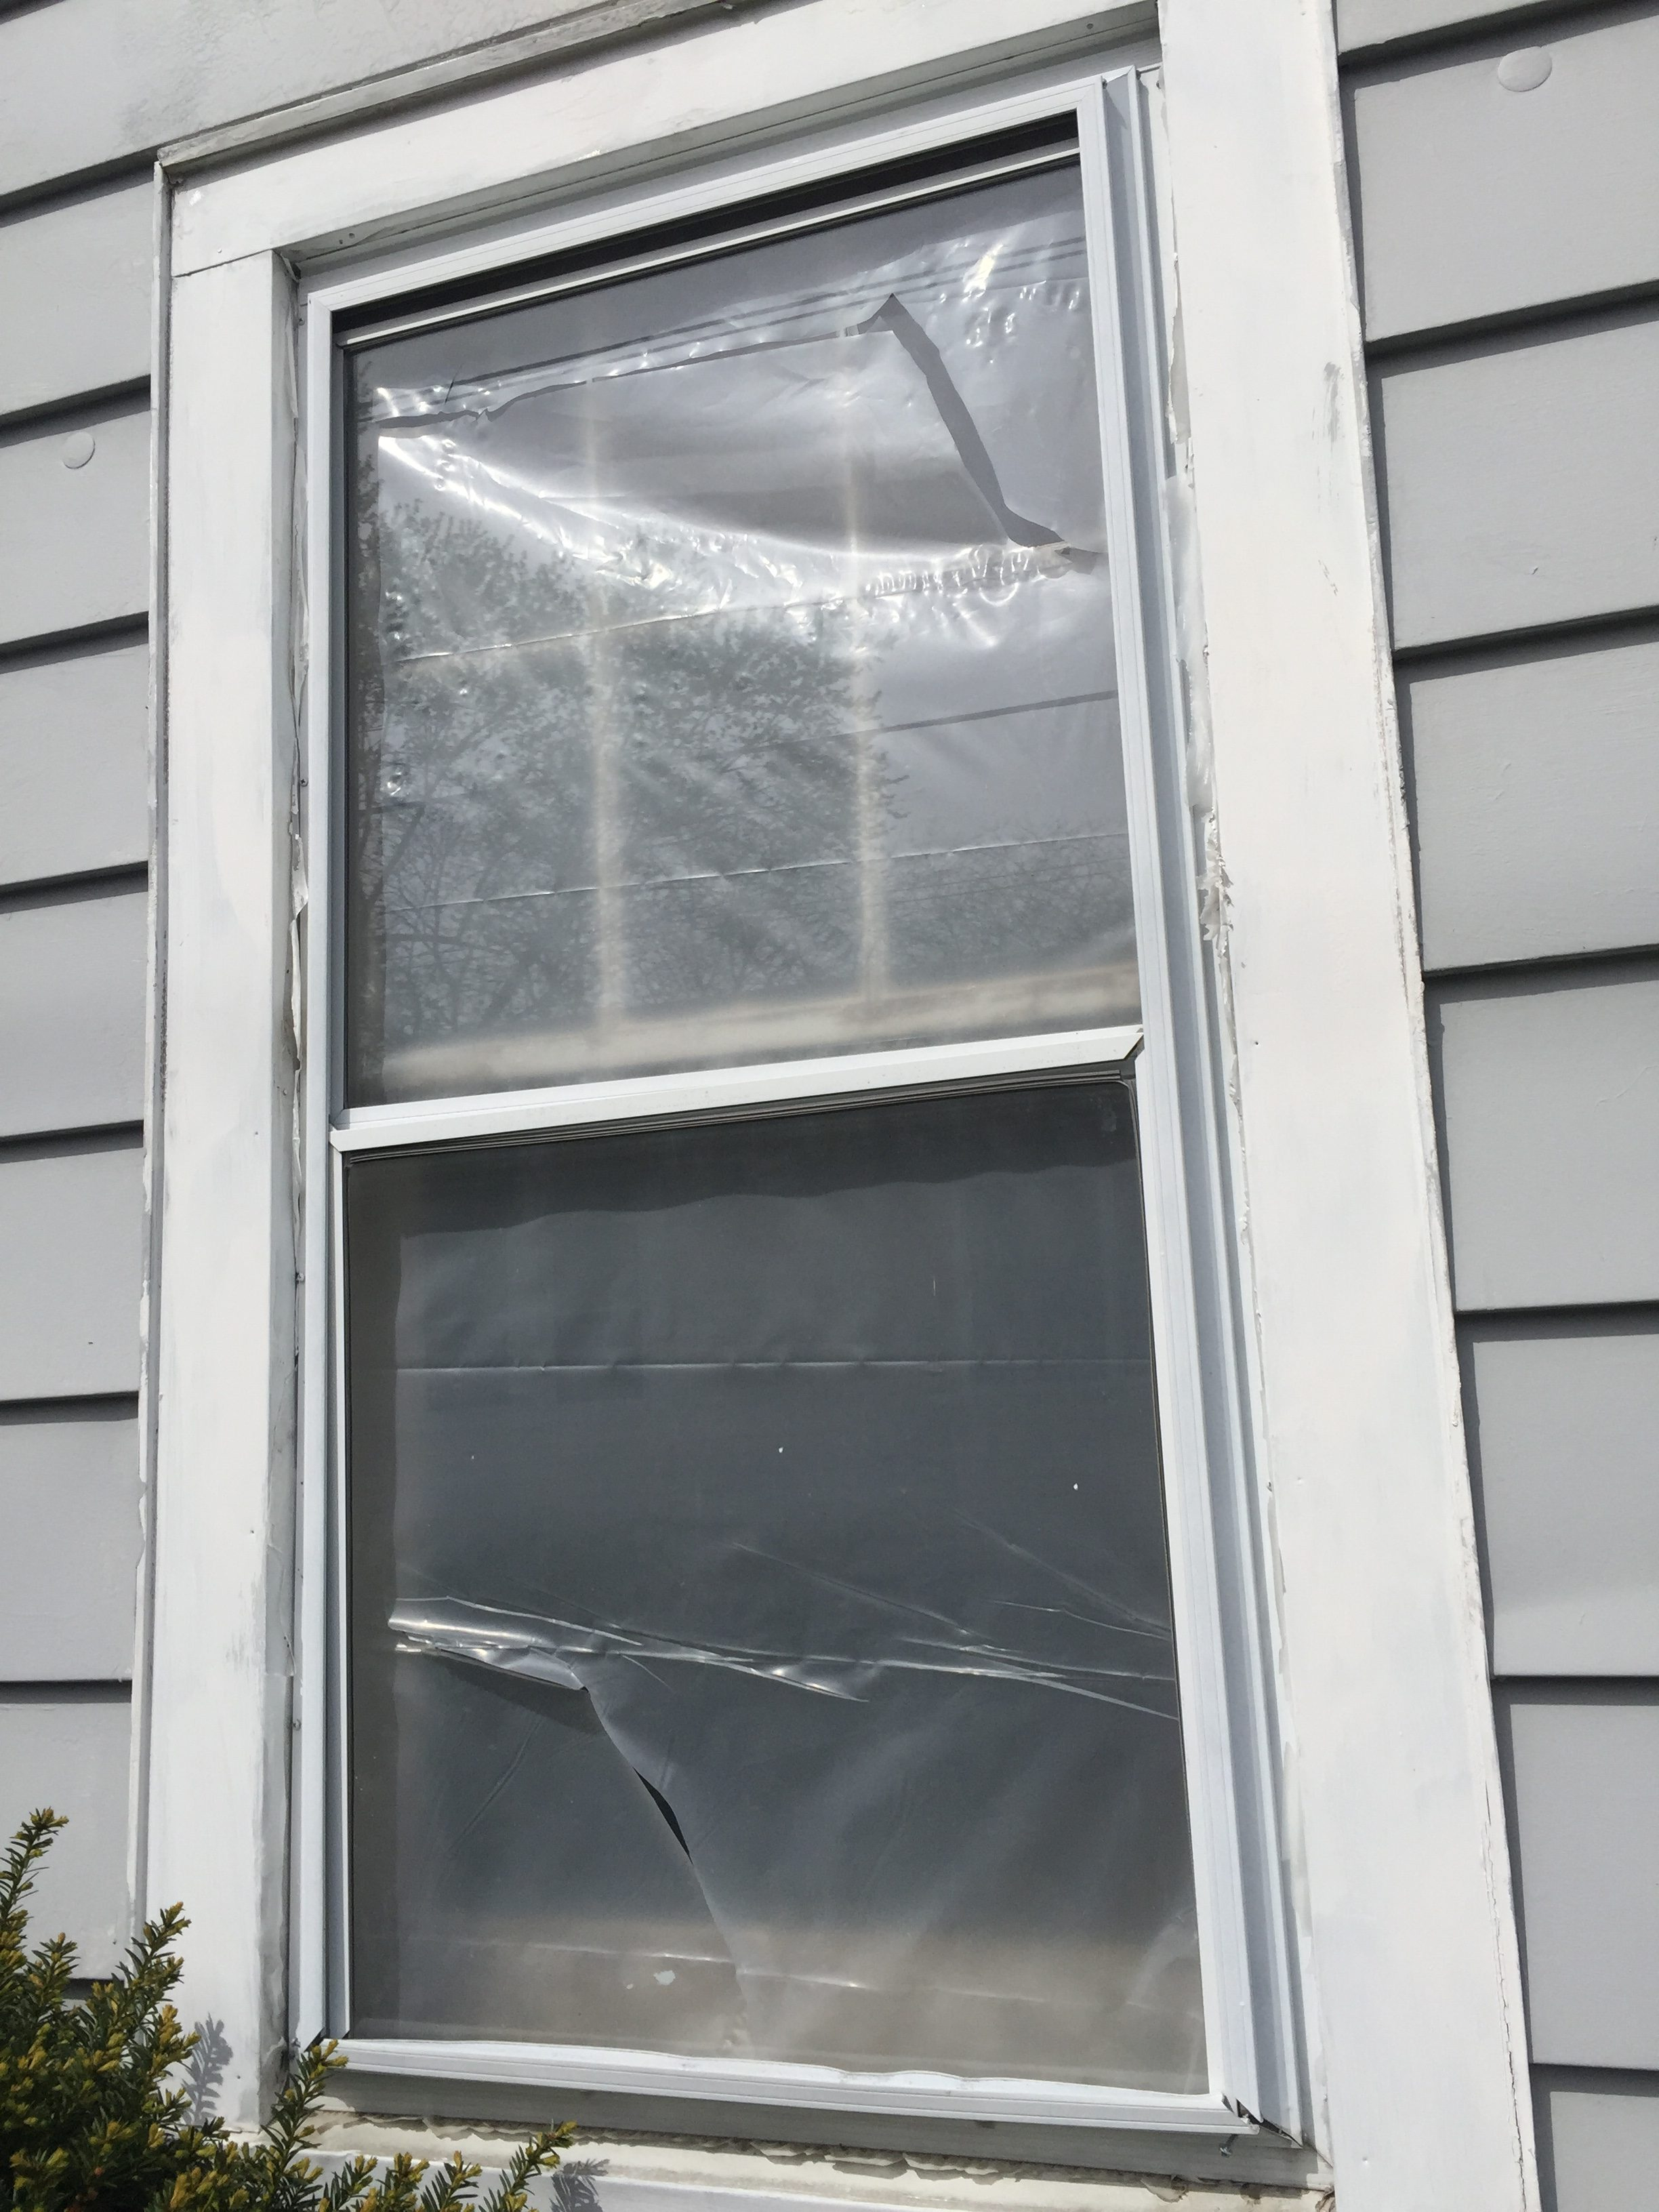 Give Me A Shout If I Can Upgrade The Windows In Your Home Price Be Surprisingly Affordable 419 212 3200